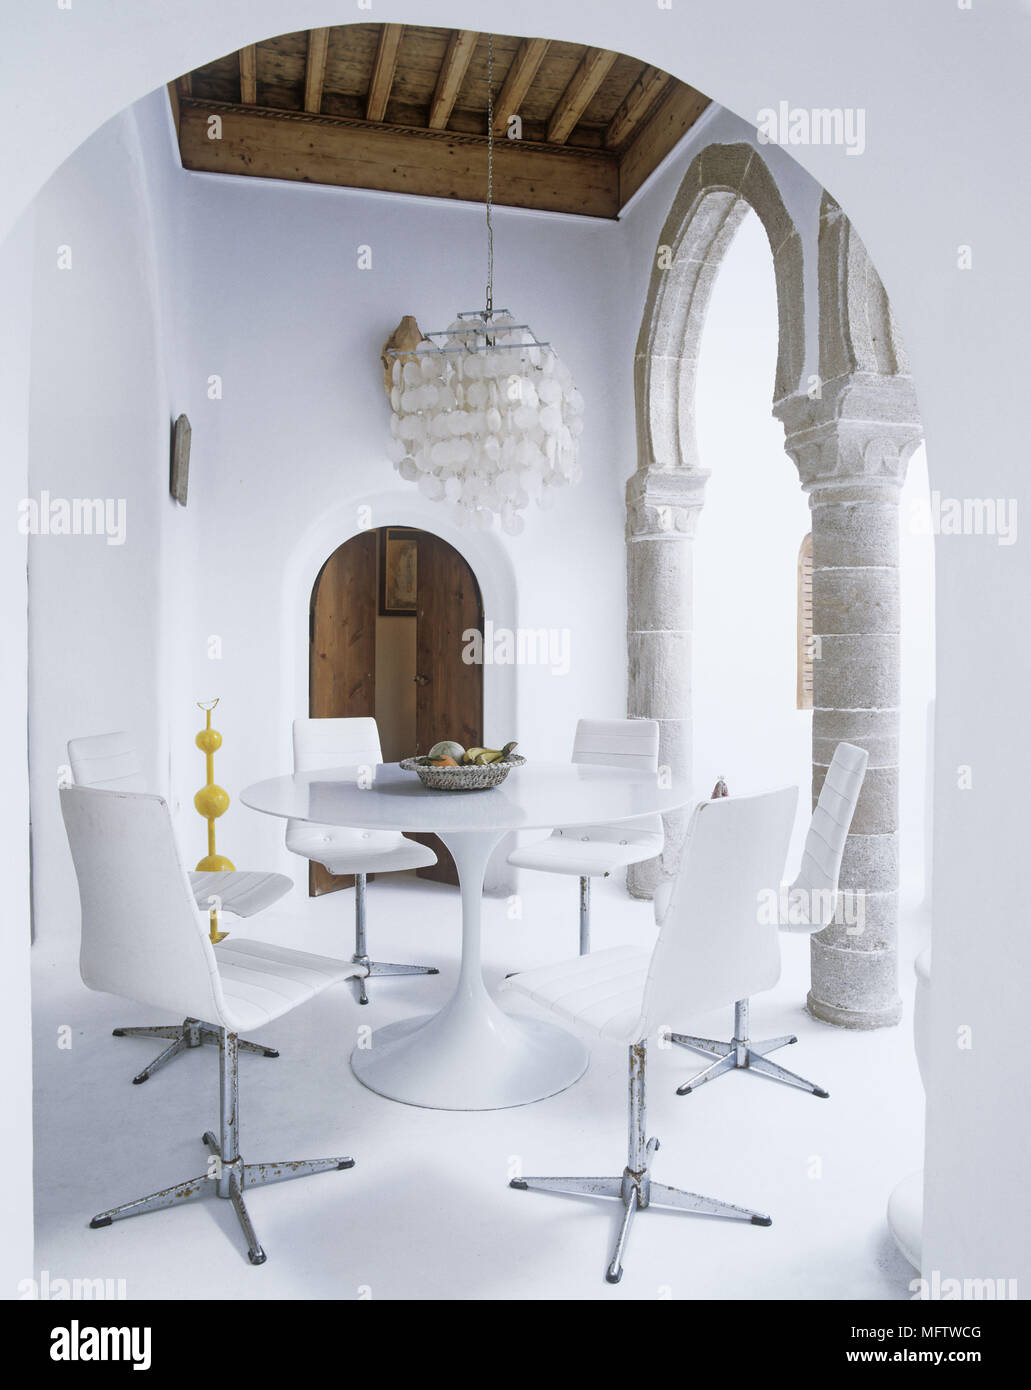 A Rustic Whitewashed Dining Room Stone Moroccan Archways Contrast With  Modern Retro White Plastic Table And Chairs